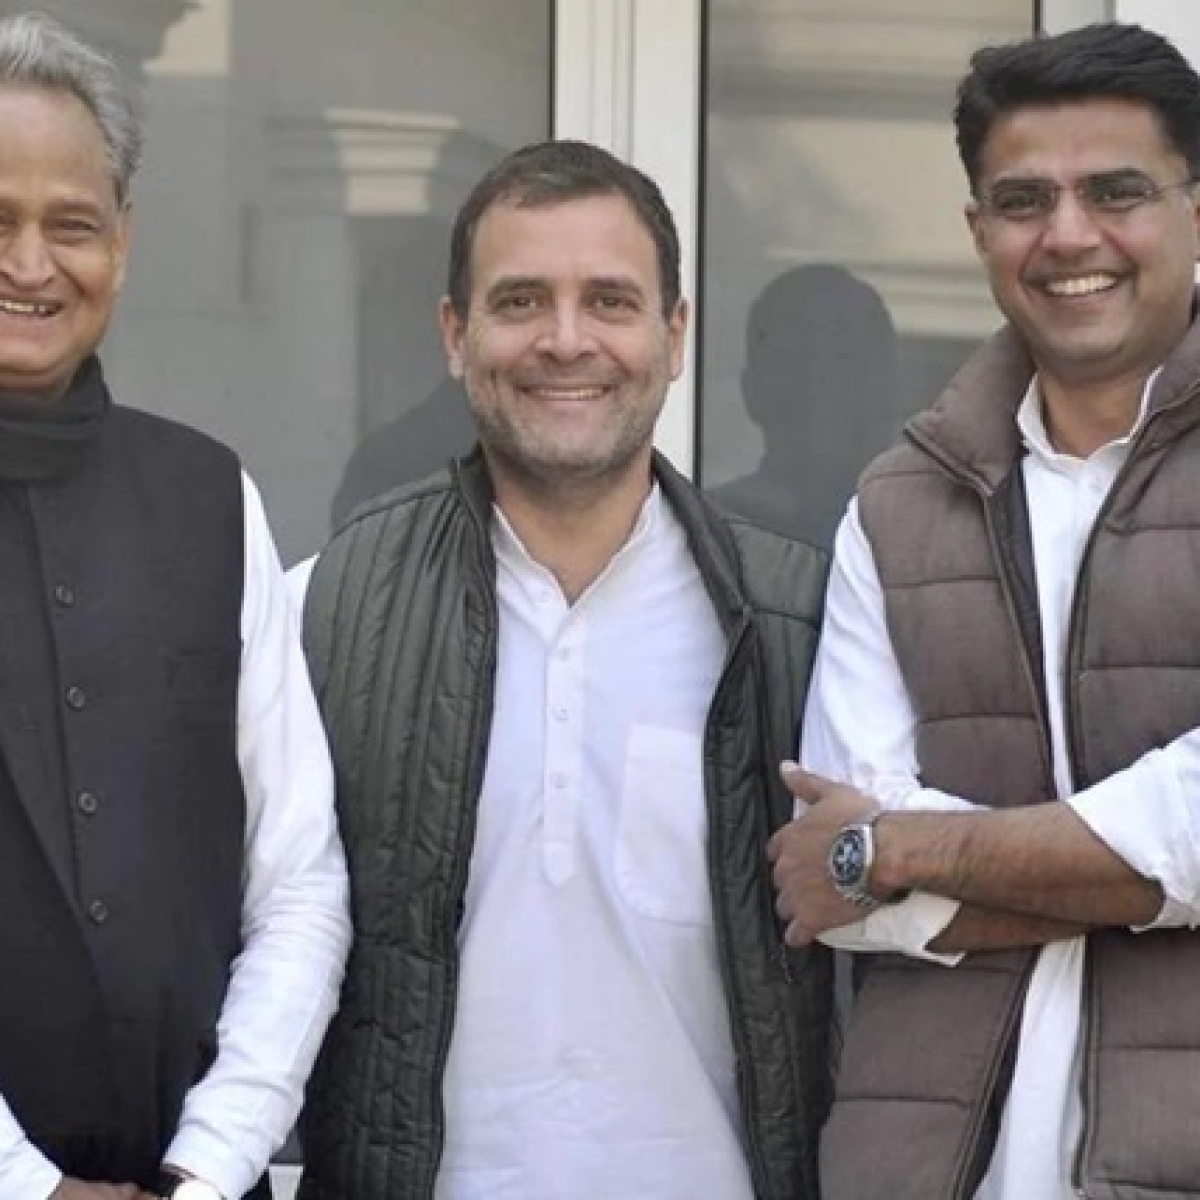 Rajasthan Row Latest Updates: We are giving a second chance to Sachin Pilot, says Raj Cong in-charge Avinash Pande